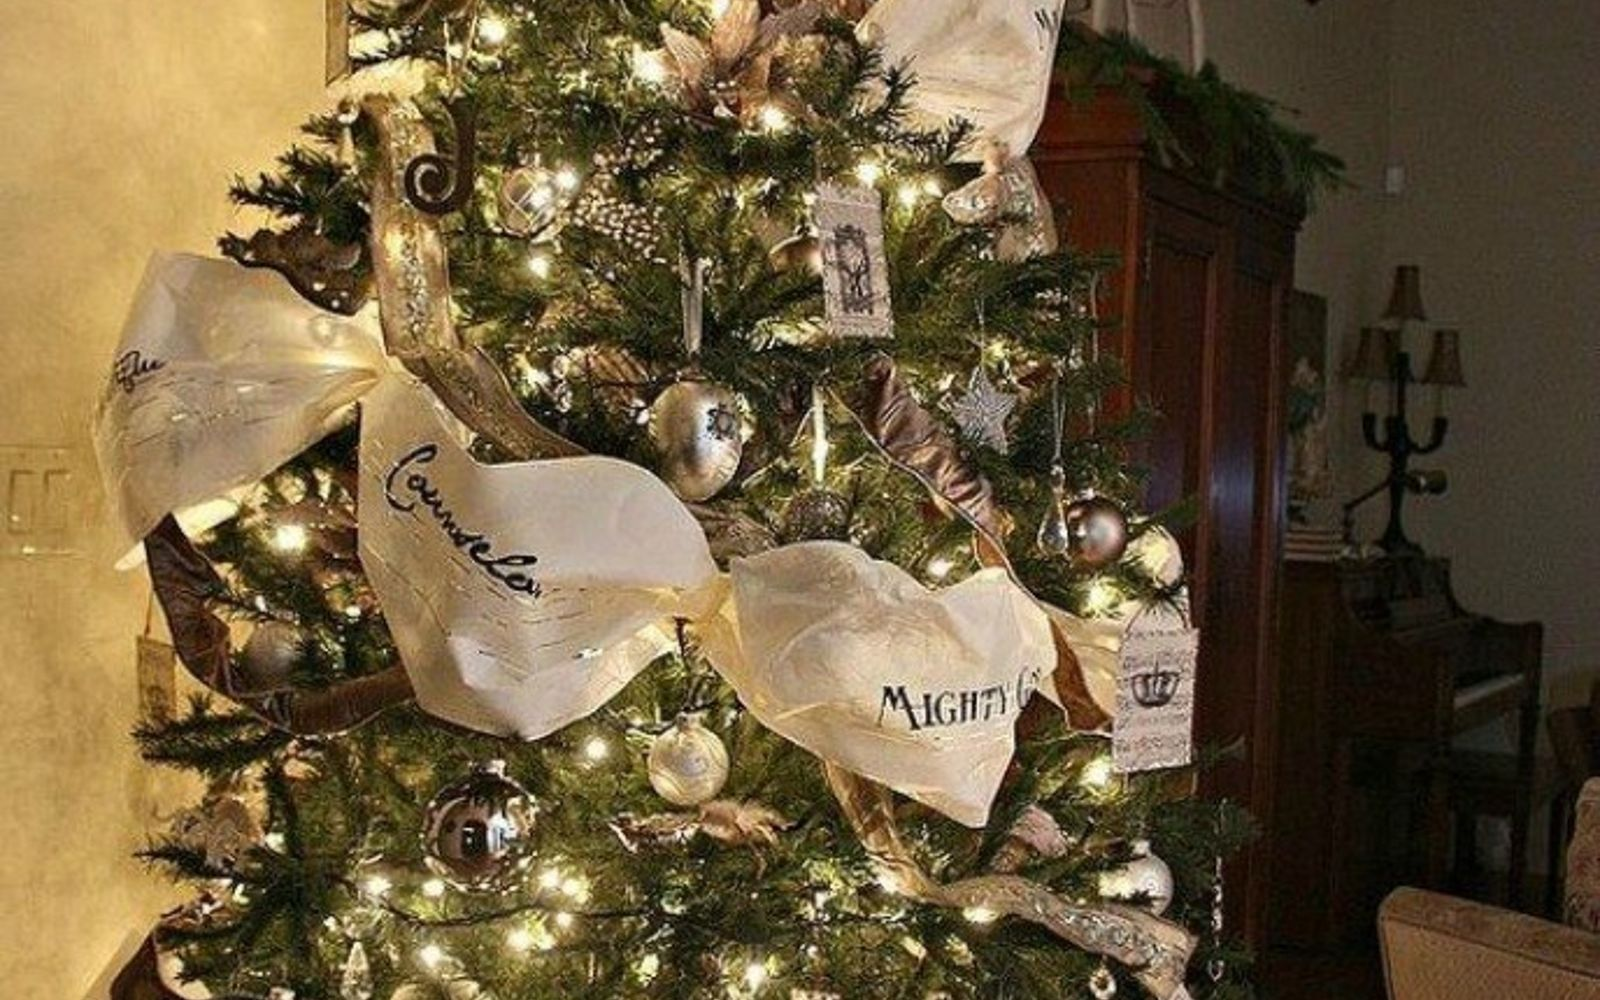 s don t stop at ornaments these tree decorating ideas are even better, christmas decorations, seasonal holiday decor, Wrap around paper ribbon for a fuller effect